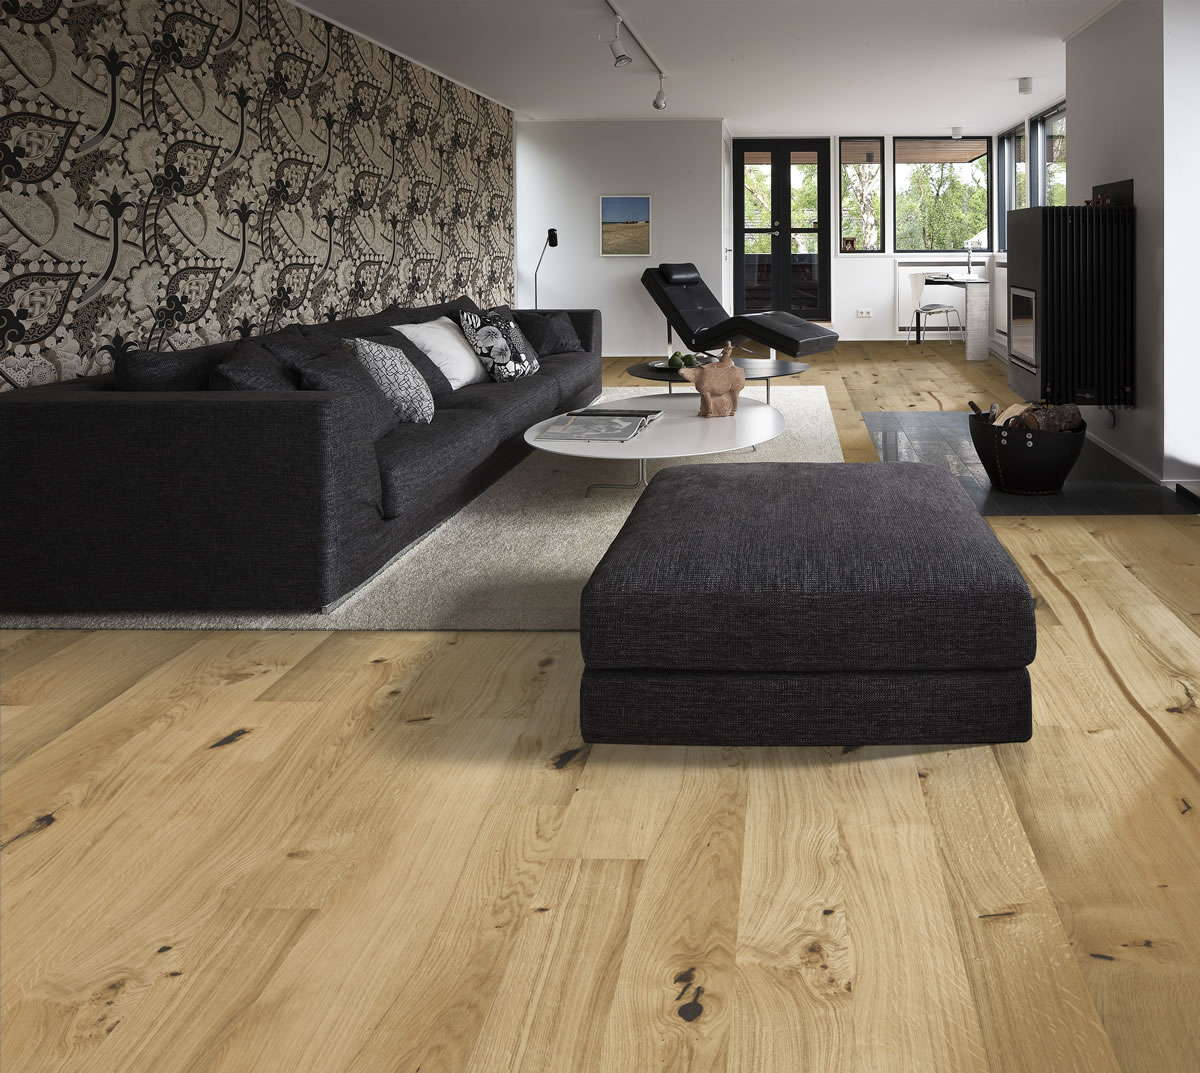 kahrs linnea oak village engineered wood flooring. Black Bedroom Furniture Sets. Home Design Ideas